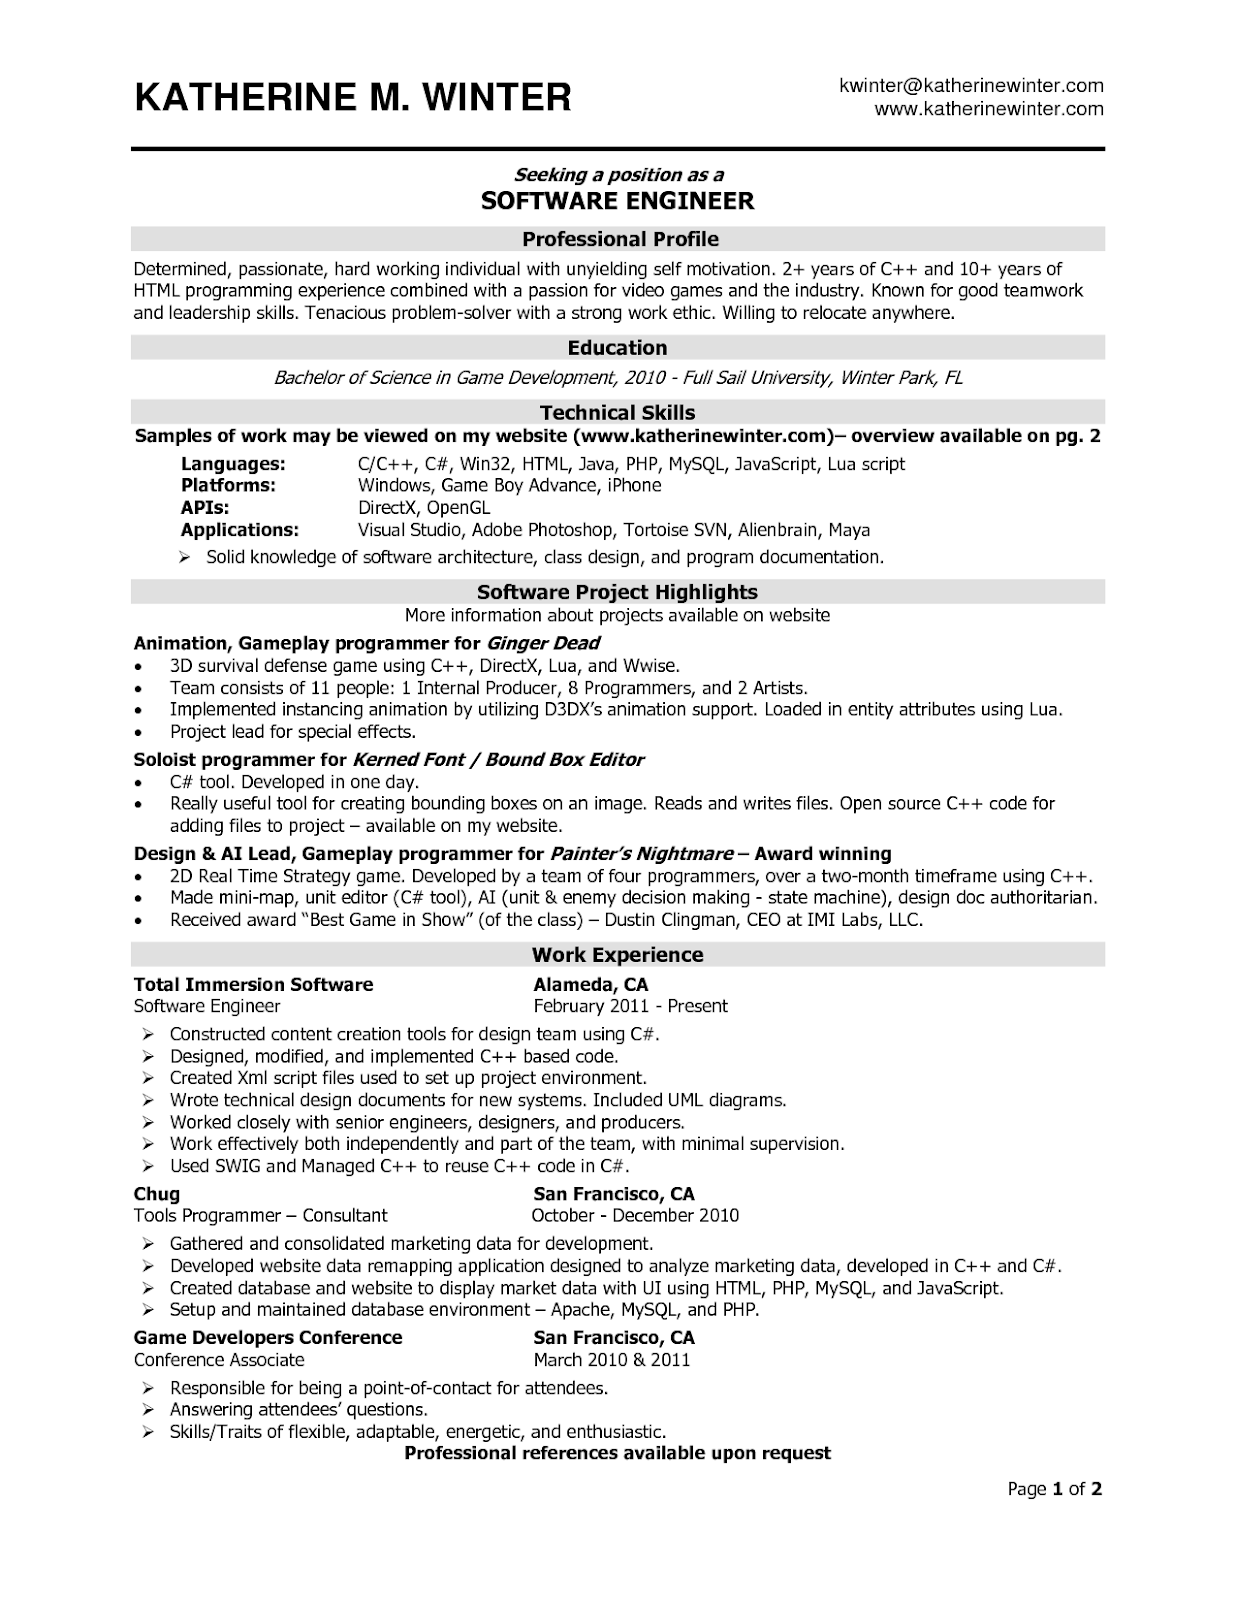 software engineer resume samples - Tire.driveeasy.co